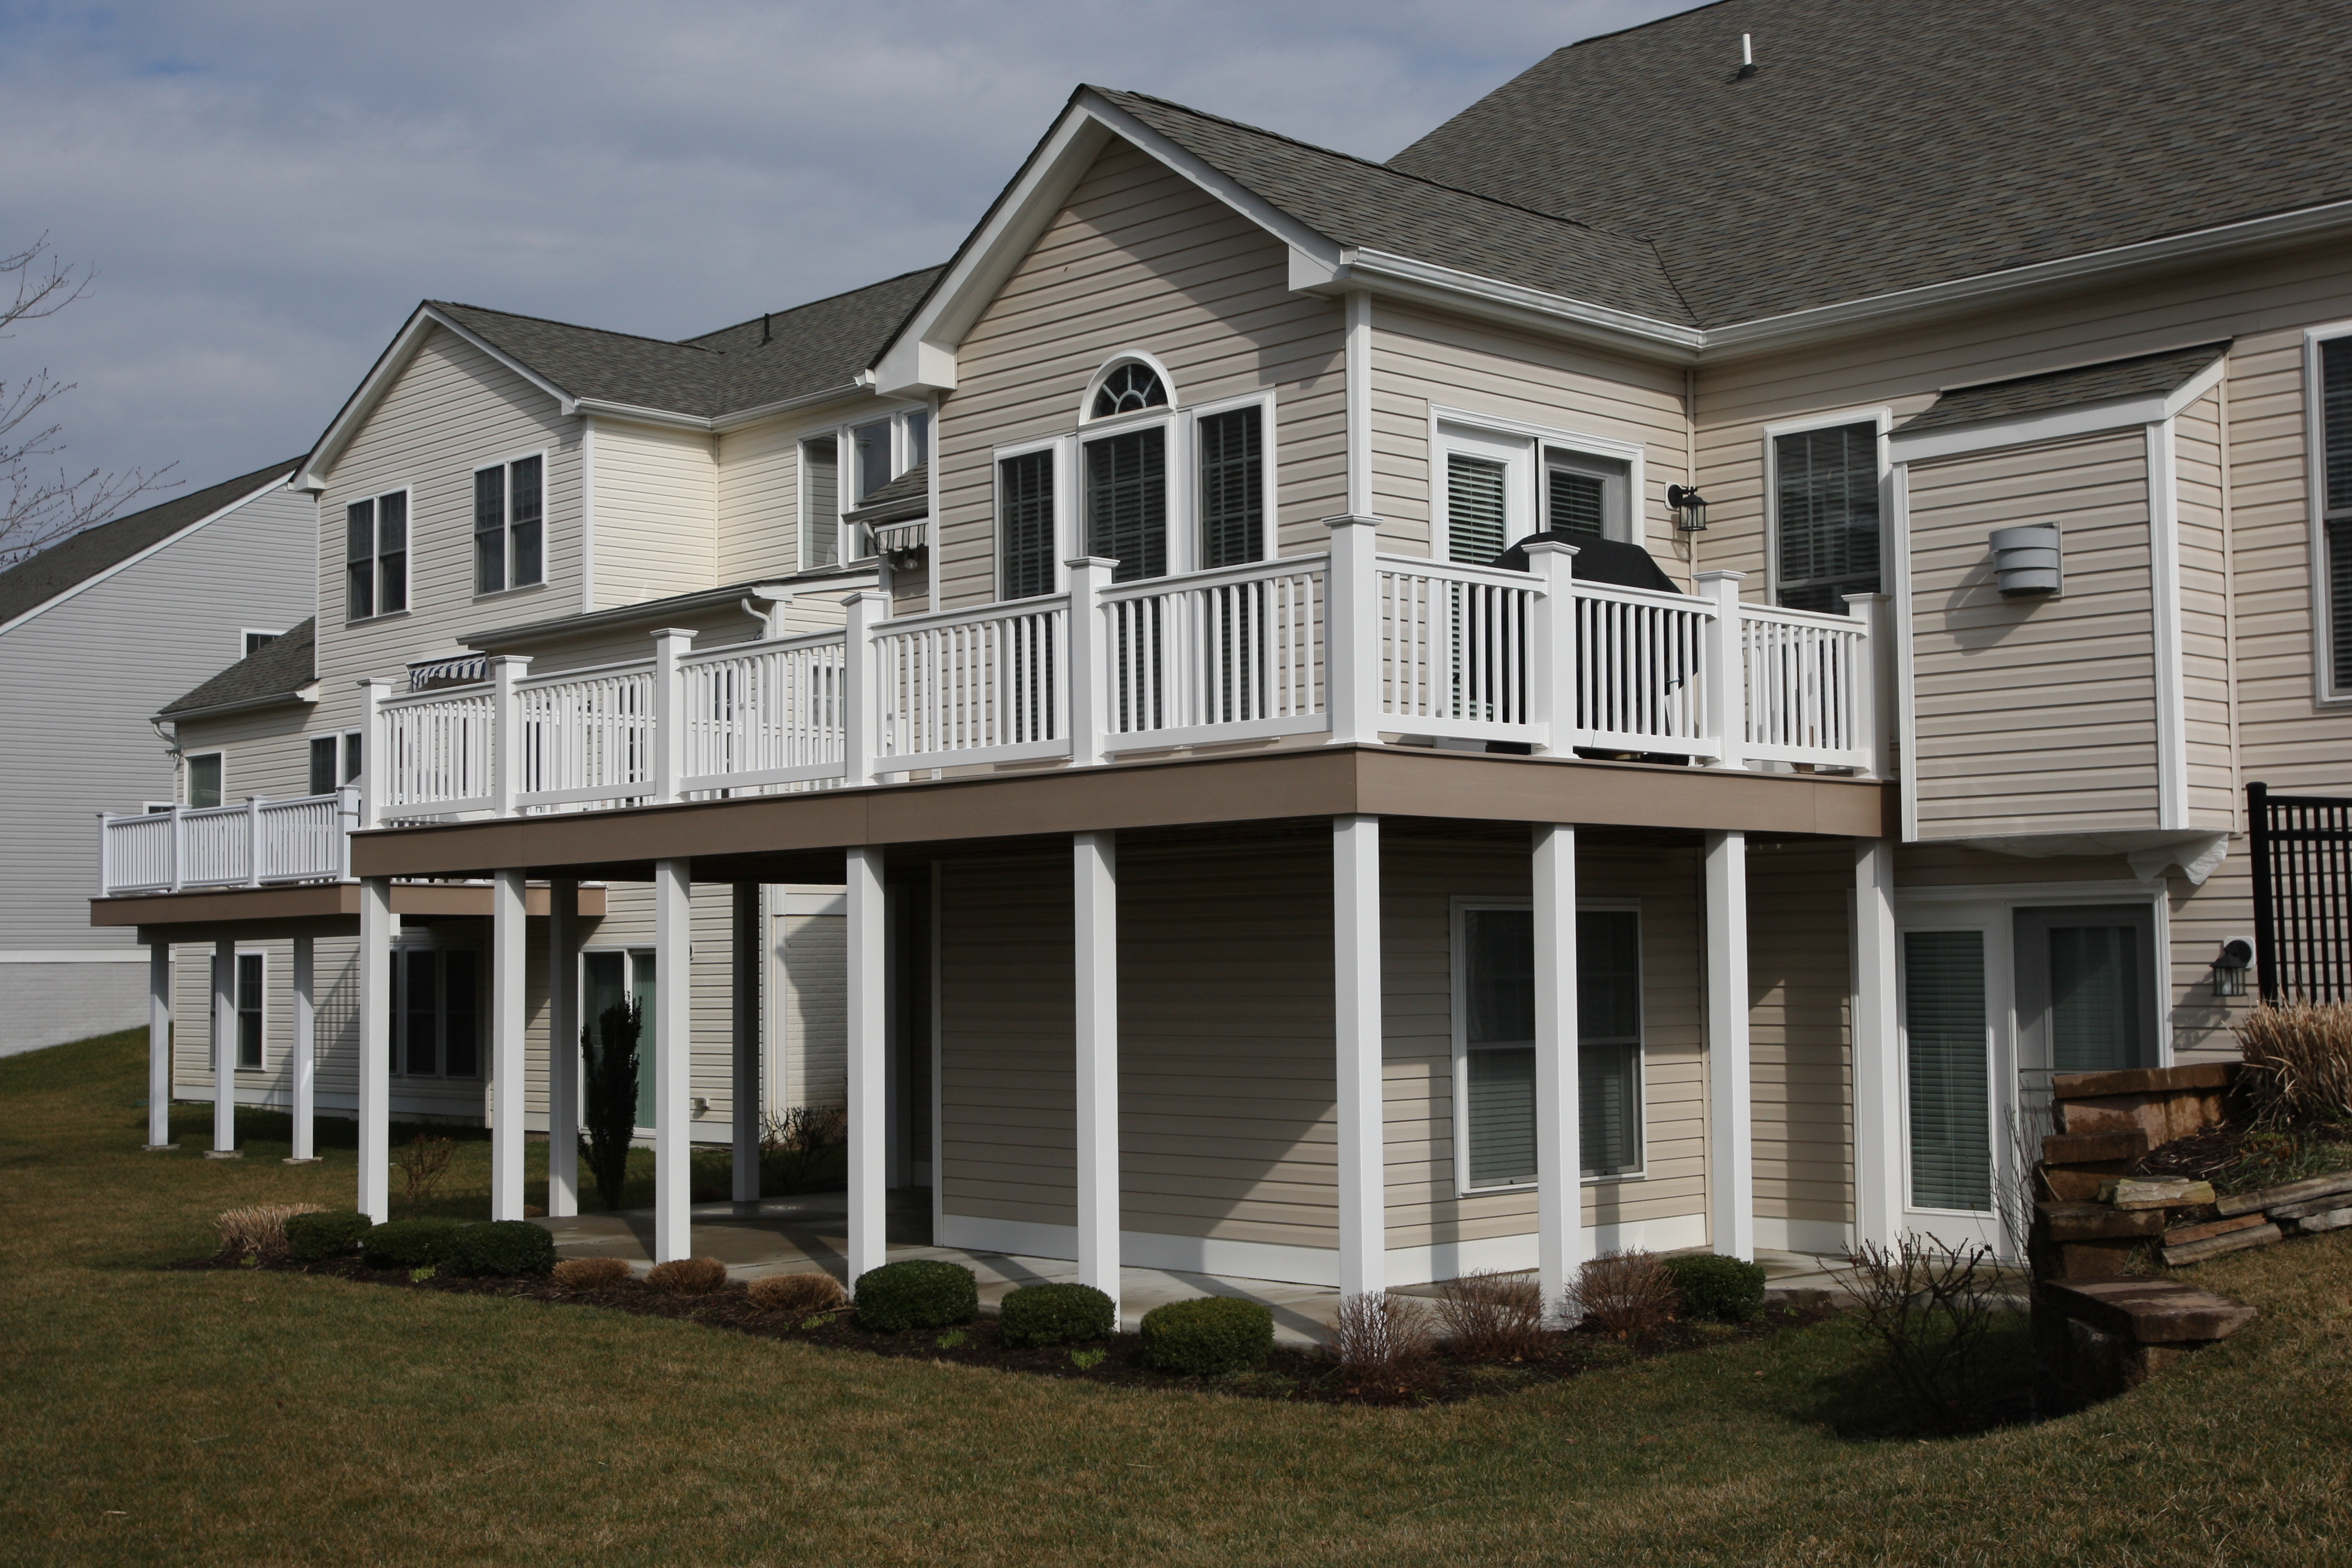 Image Galleries Yoder And Sons Construction Llc New